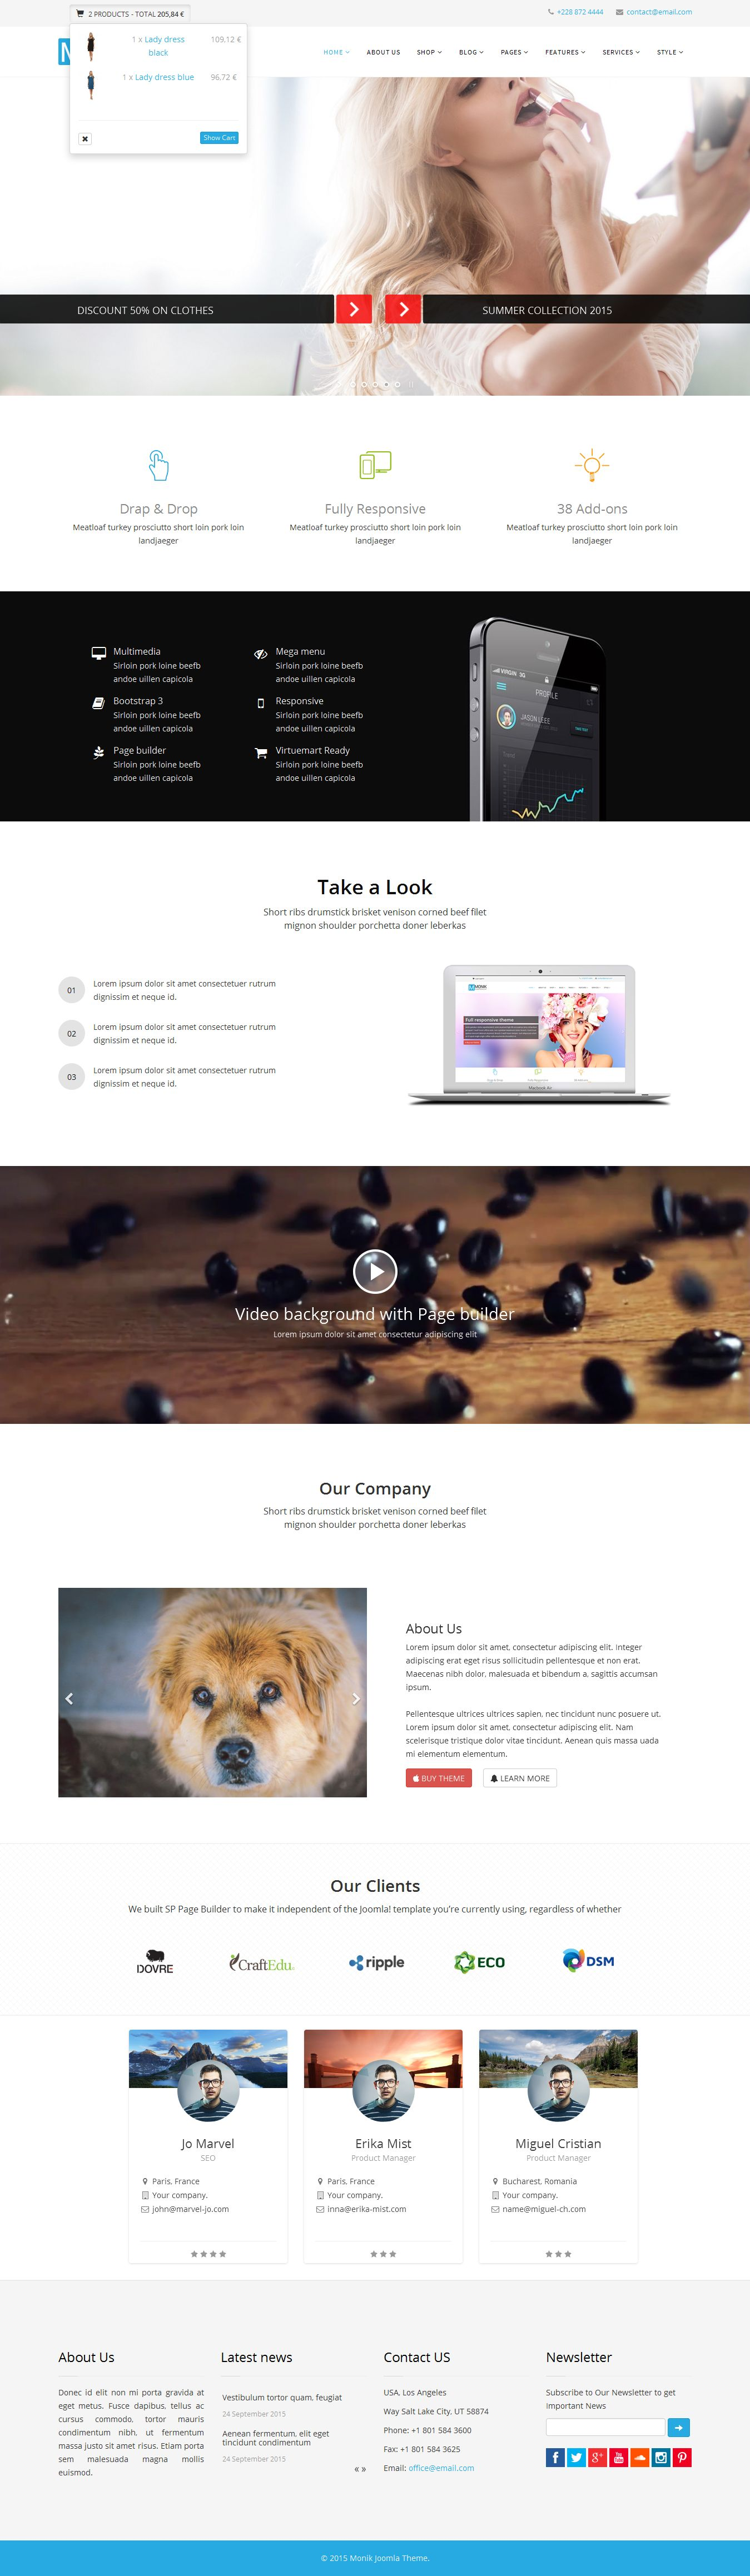 Monik - Responsive Multi-purpose Joomla Template Screenshot 8